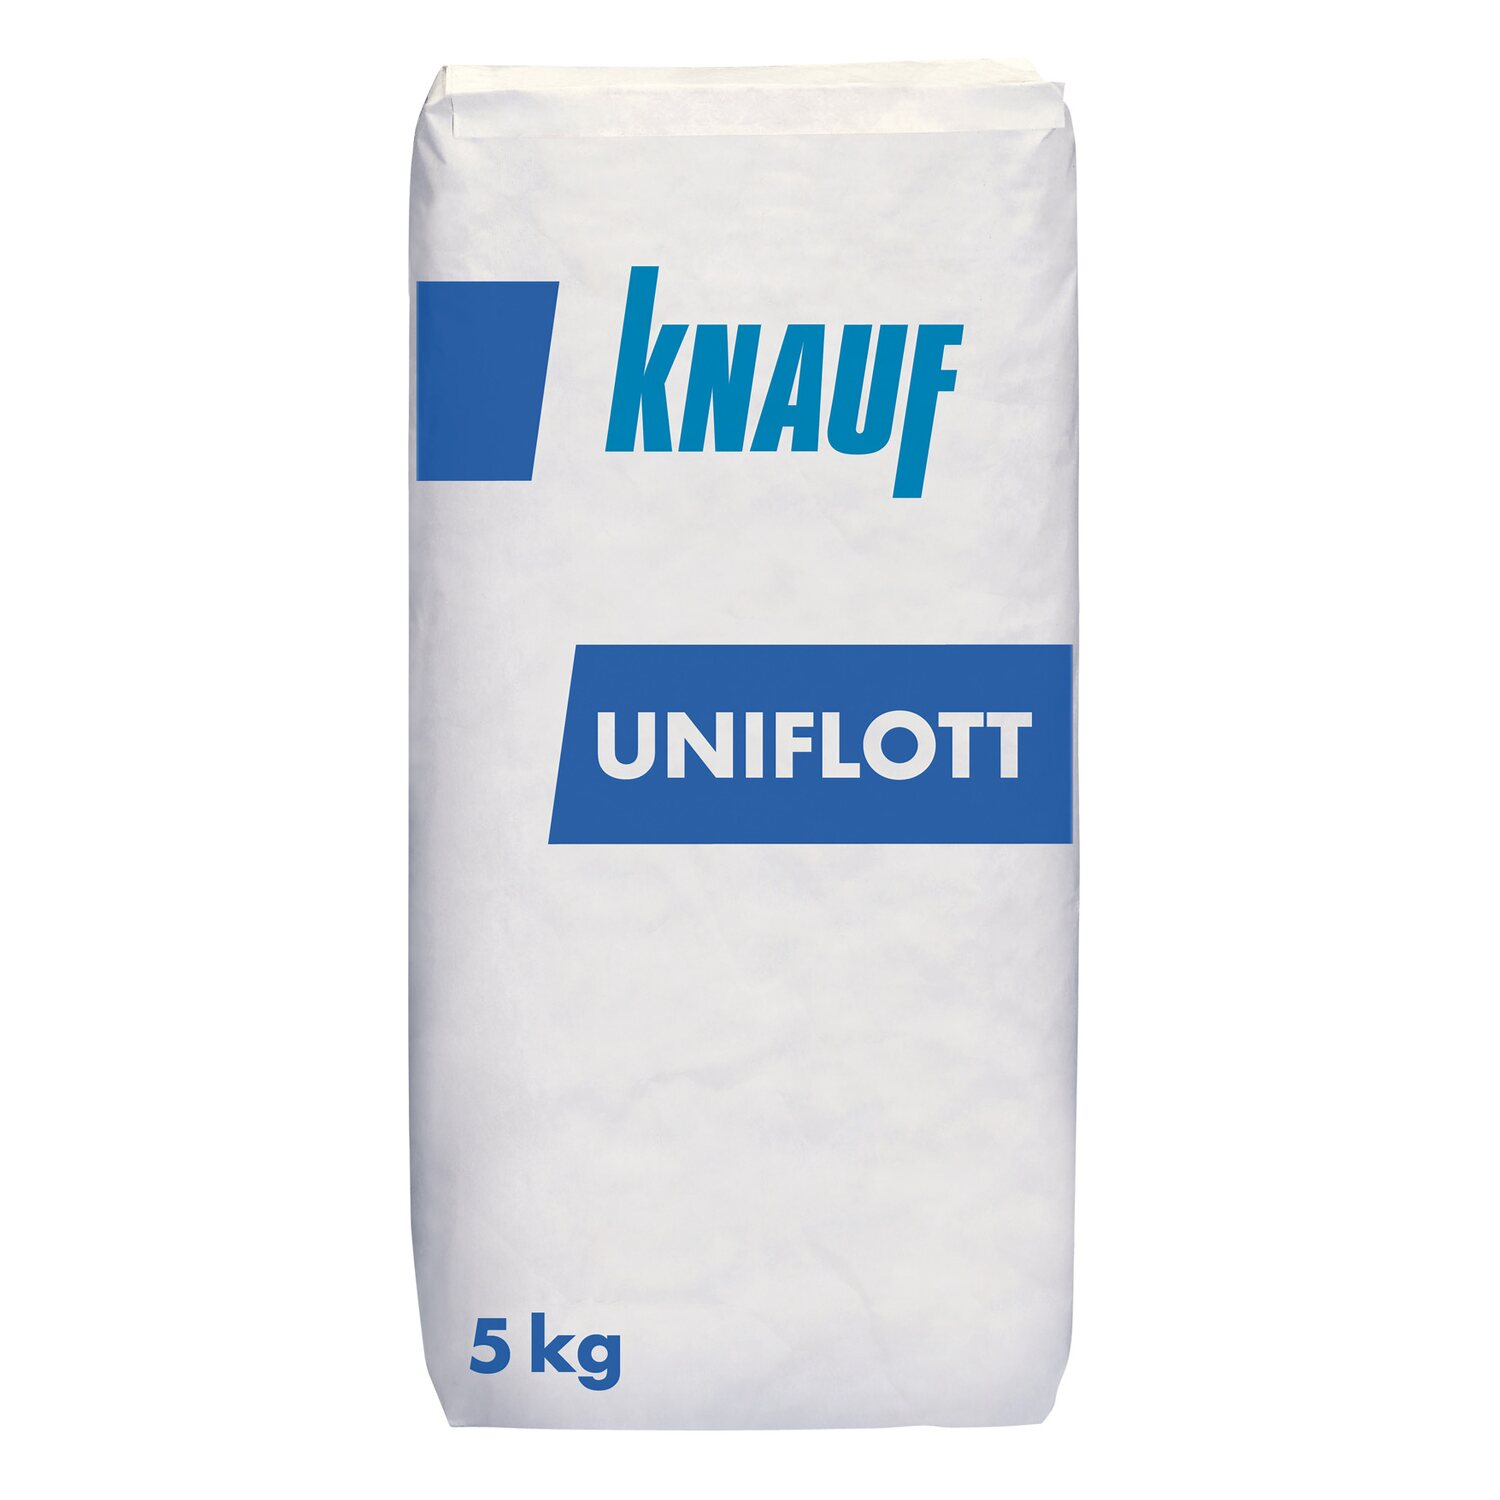 knauf stucco per cartongesso uniflott 5 kg acquista da obi. Black Bedroom Furniture Sets. Home Design Ideas